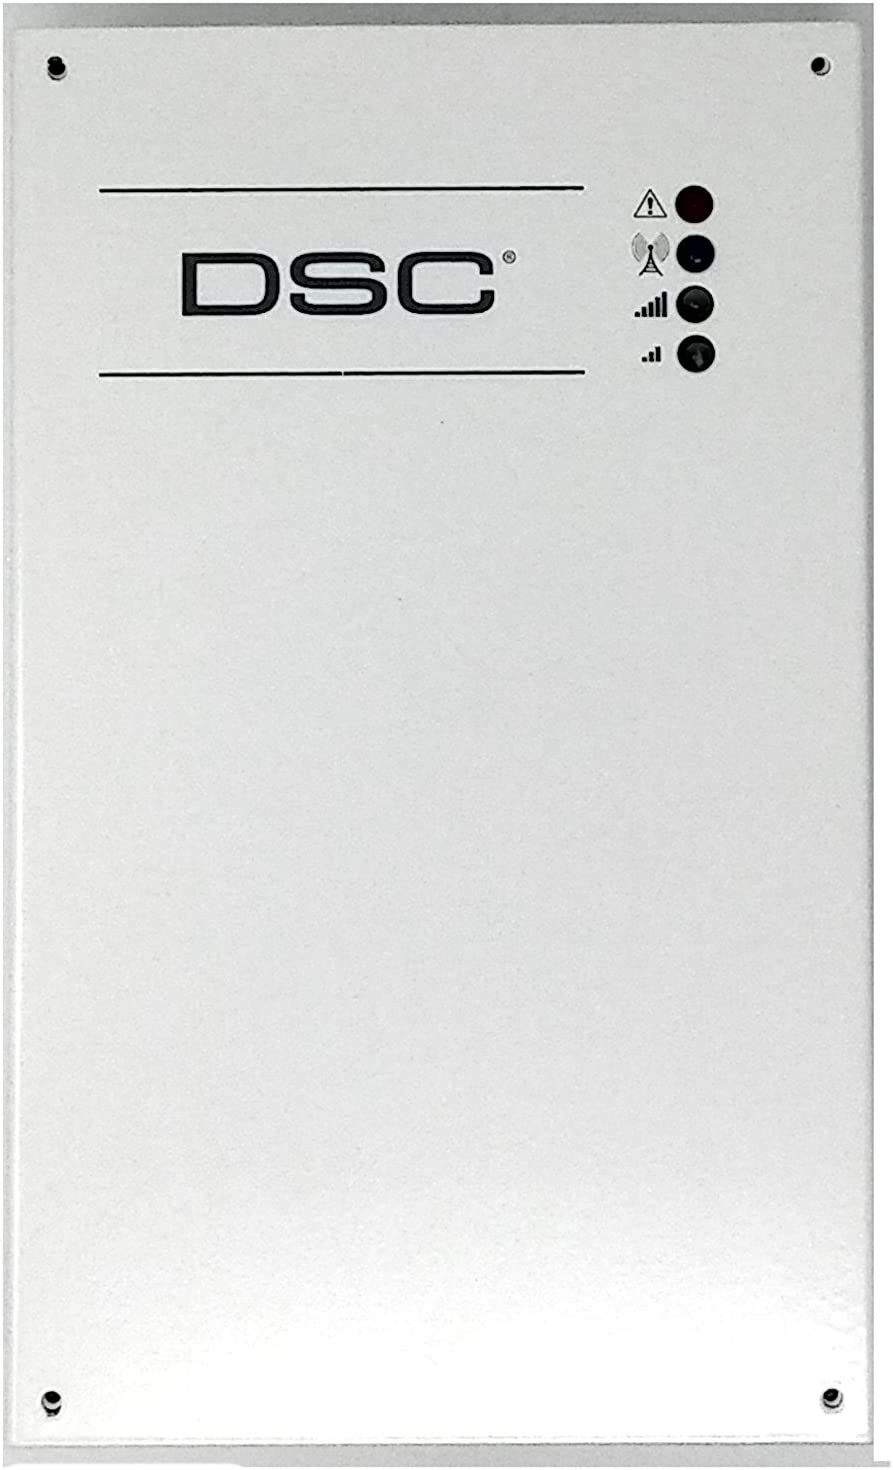 DSC Tyco Security Cellular Universal Wireless Alarm Communicator 3g4010-usa for sale online